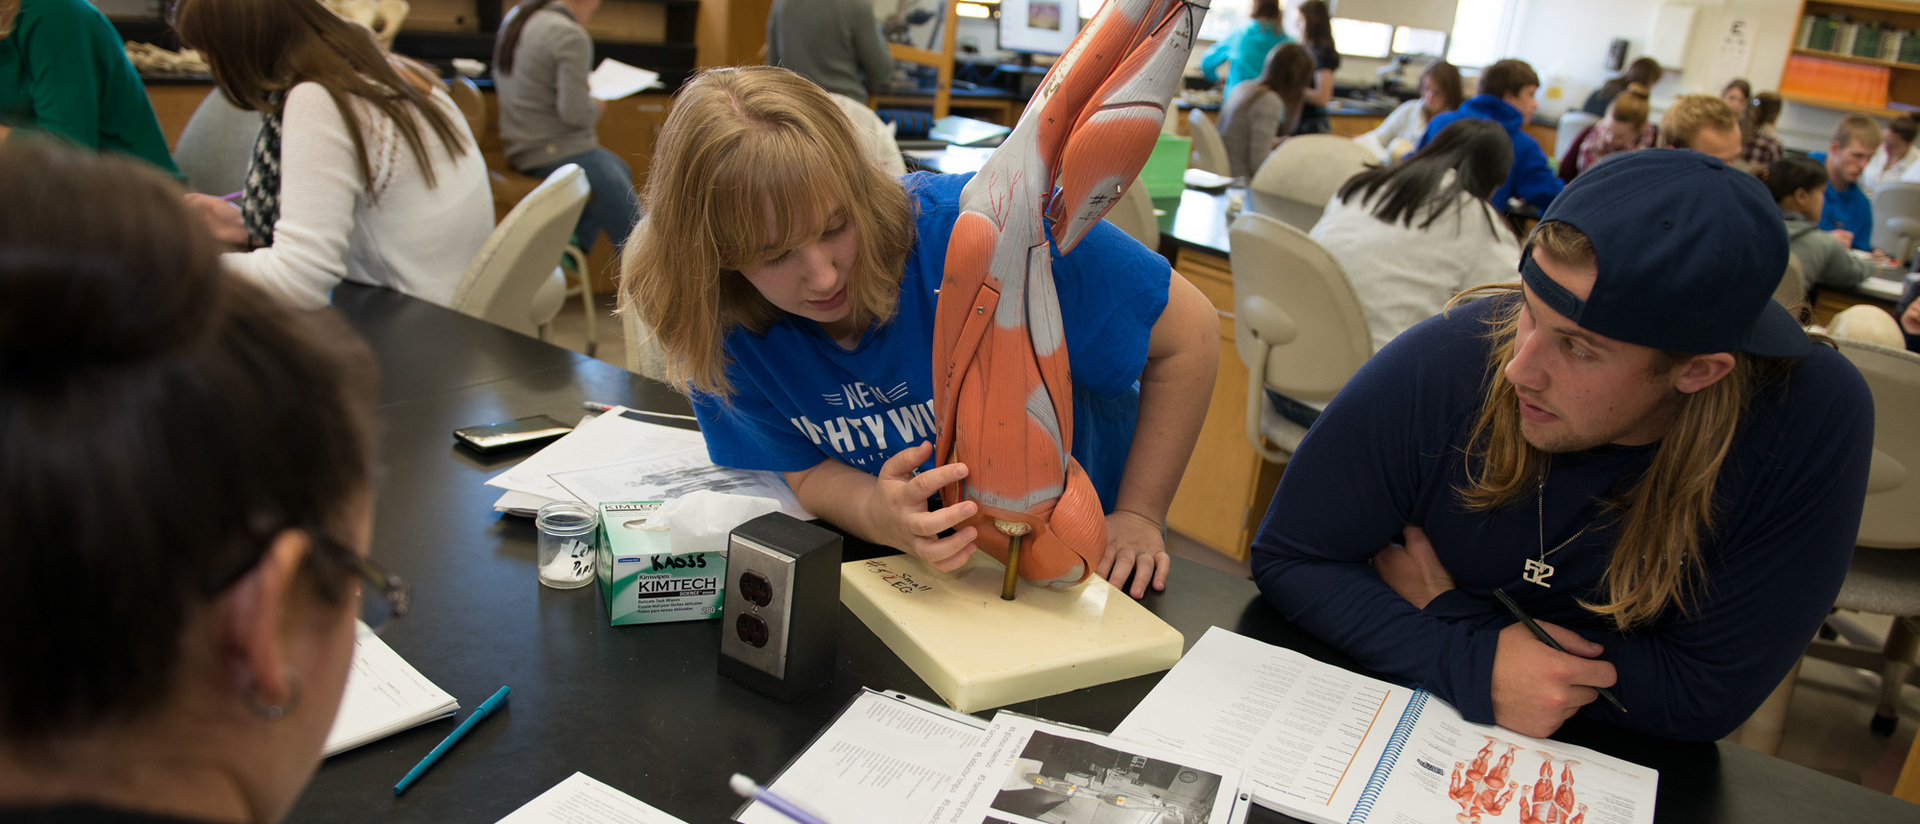 Biology students studying a model of the human leg